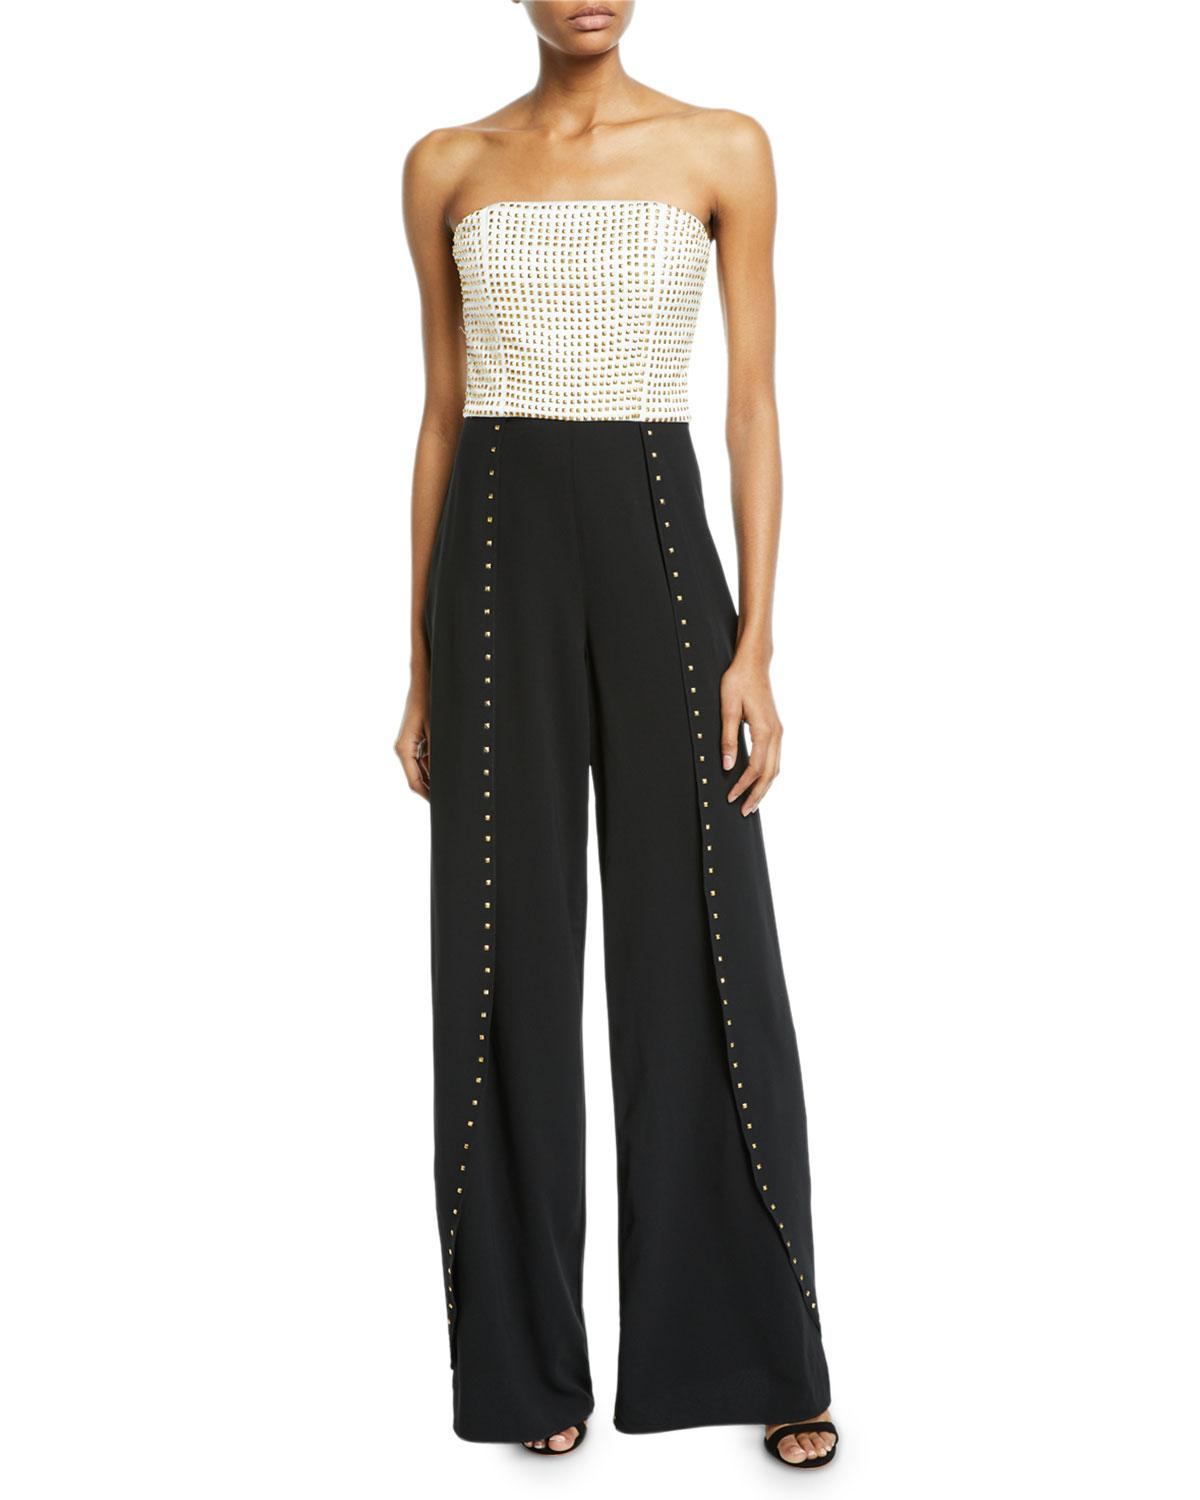 841aad87012f Alice + Olivia. Women s Black Angelica Studded Open-pleat Bustier Jumpsuit